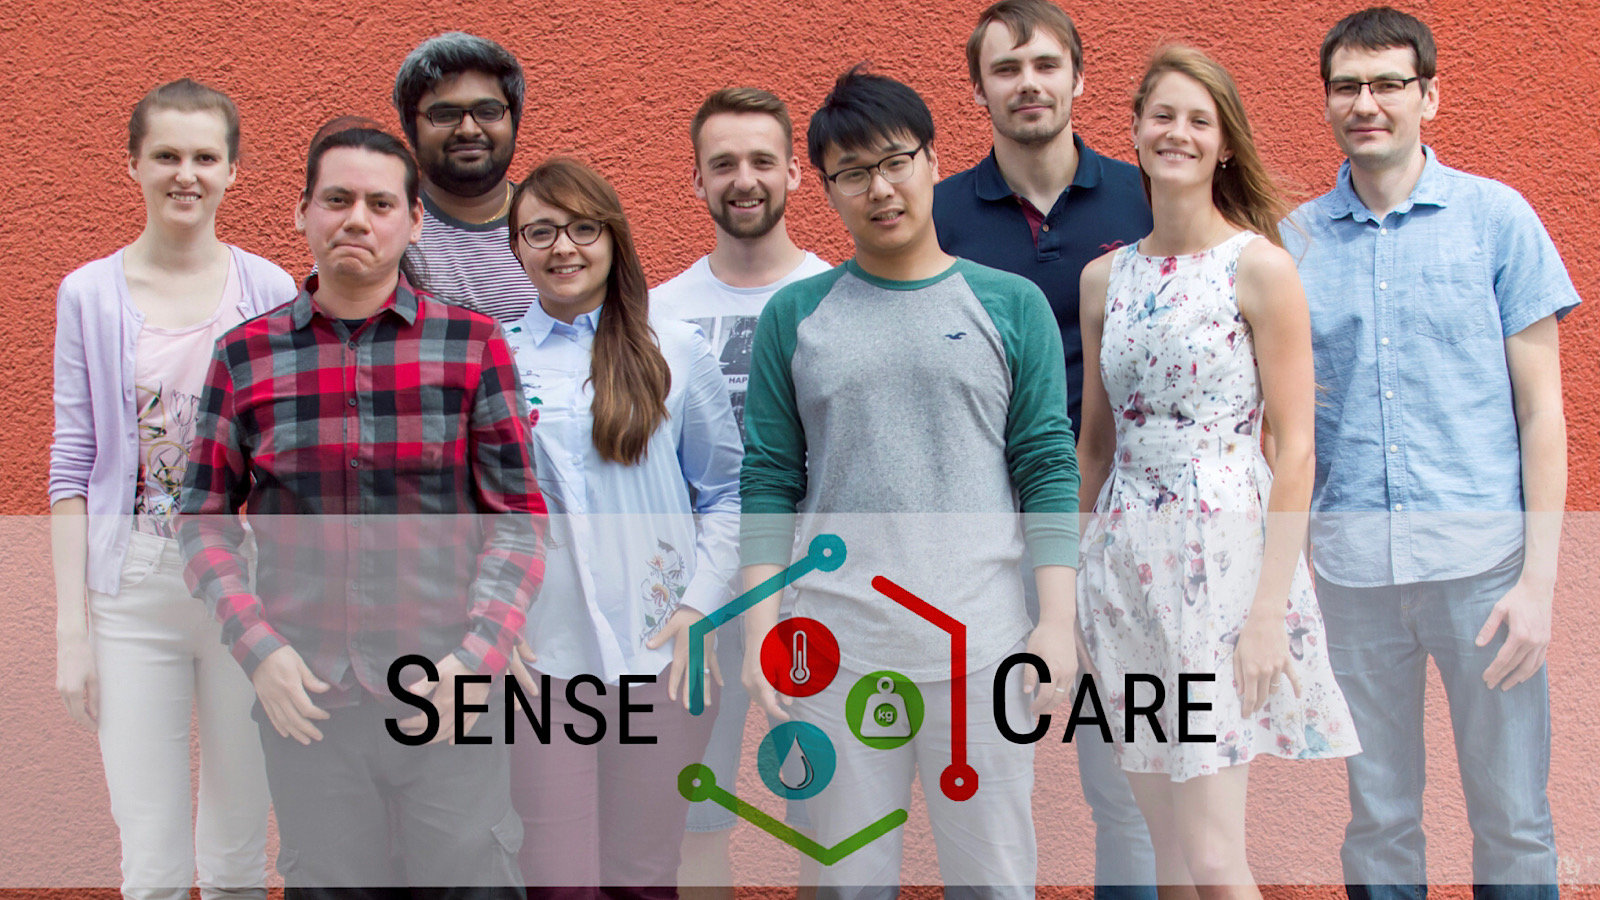 Nine people stand in front of a wall with the SenseCare logo at the bottom of the image